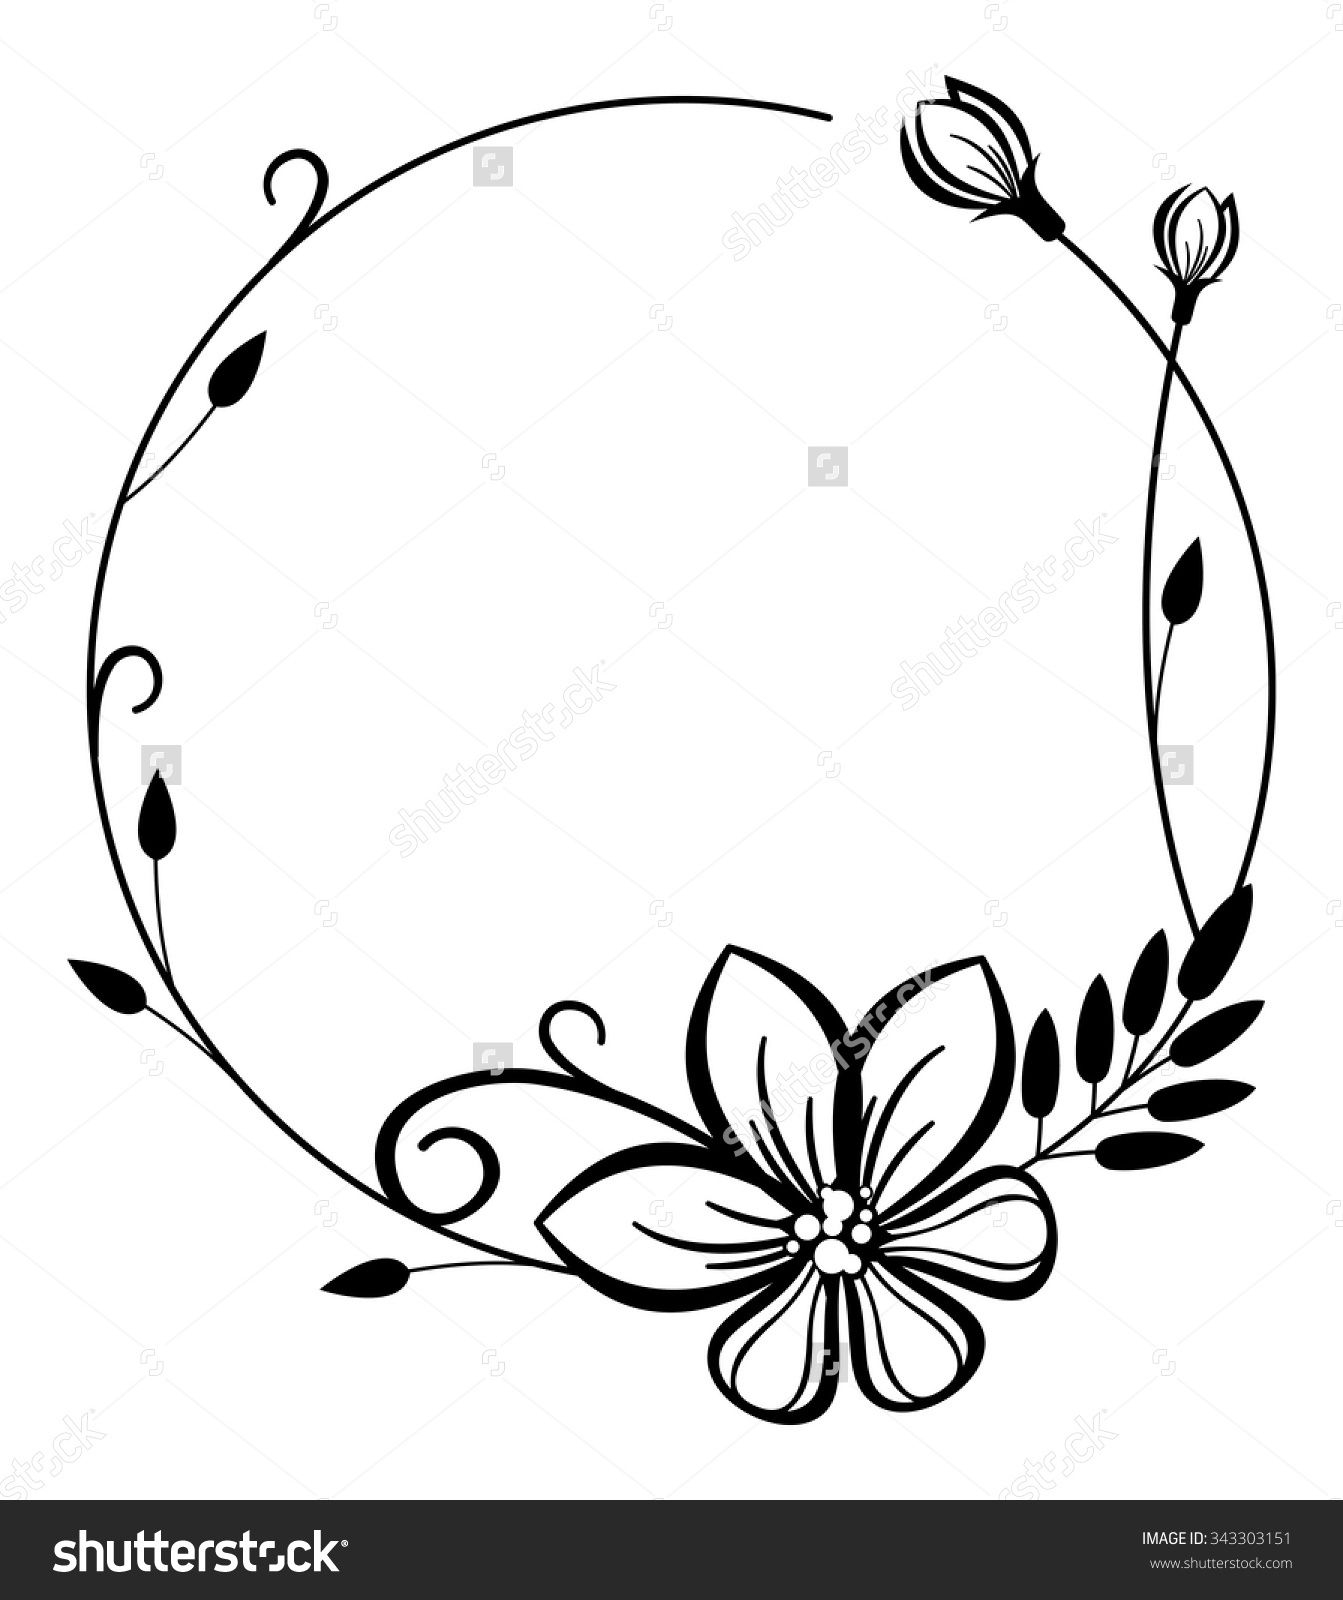 Round black and white frame with flowers Flower frame